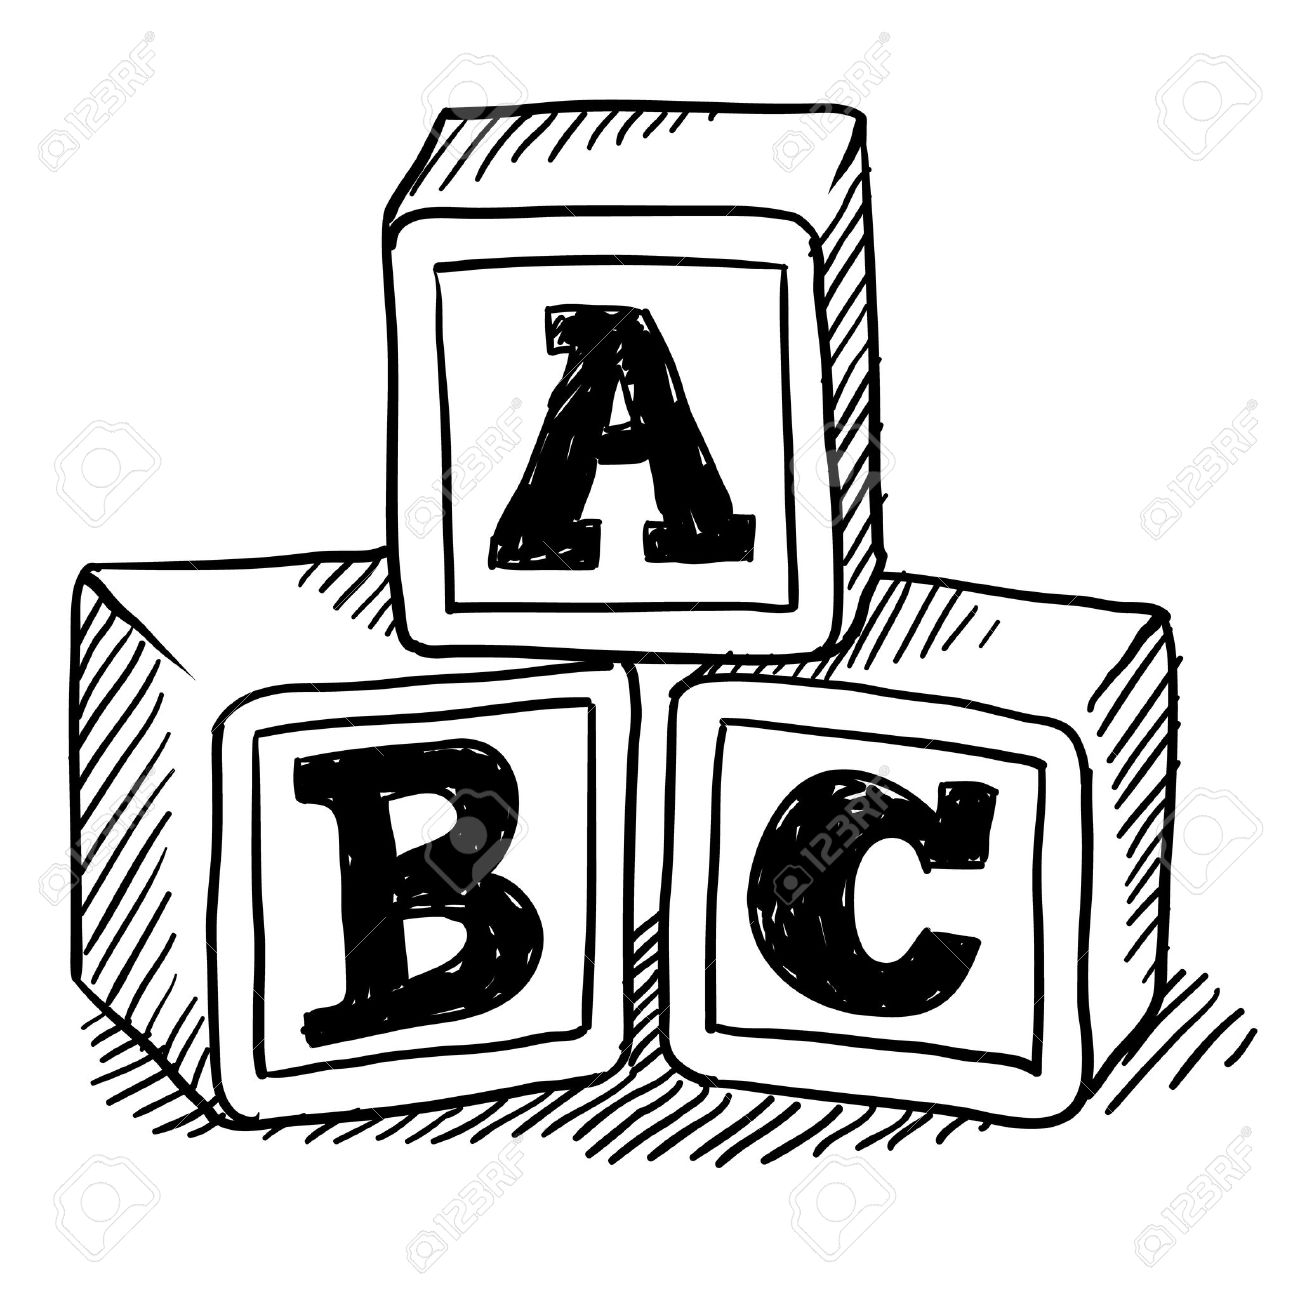 Abc clipart black and white 4 » Clipart Station graphic royalty free